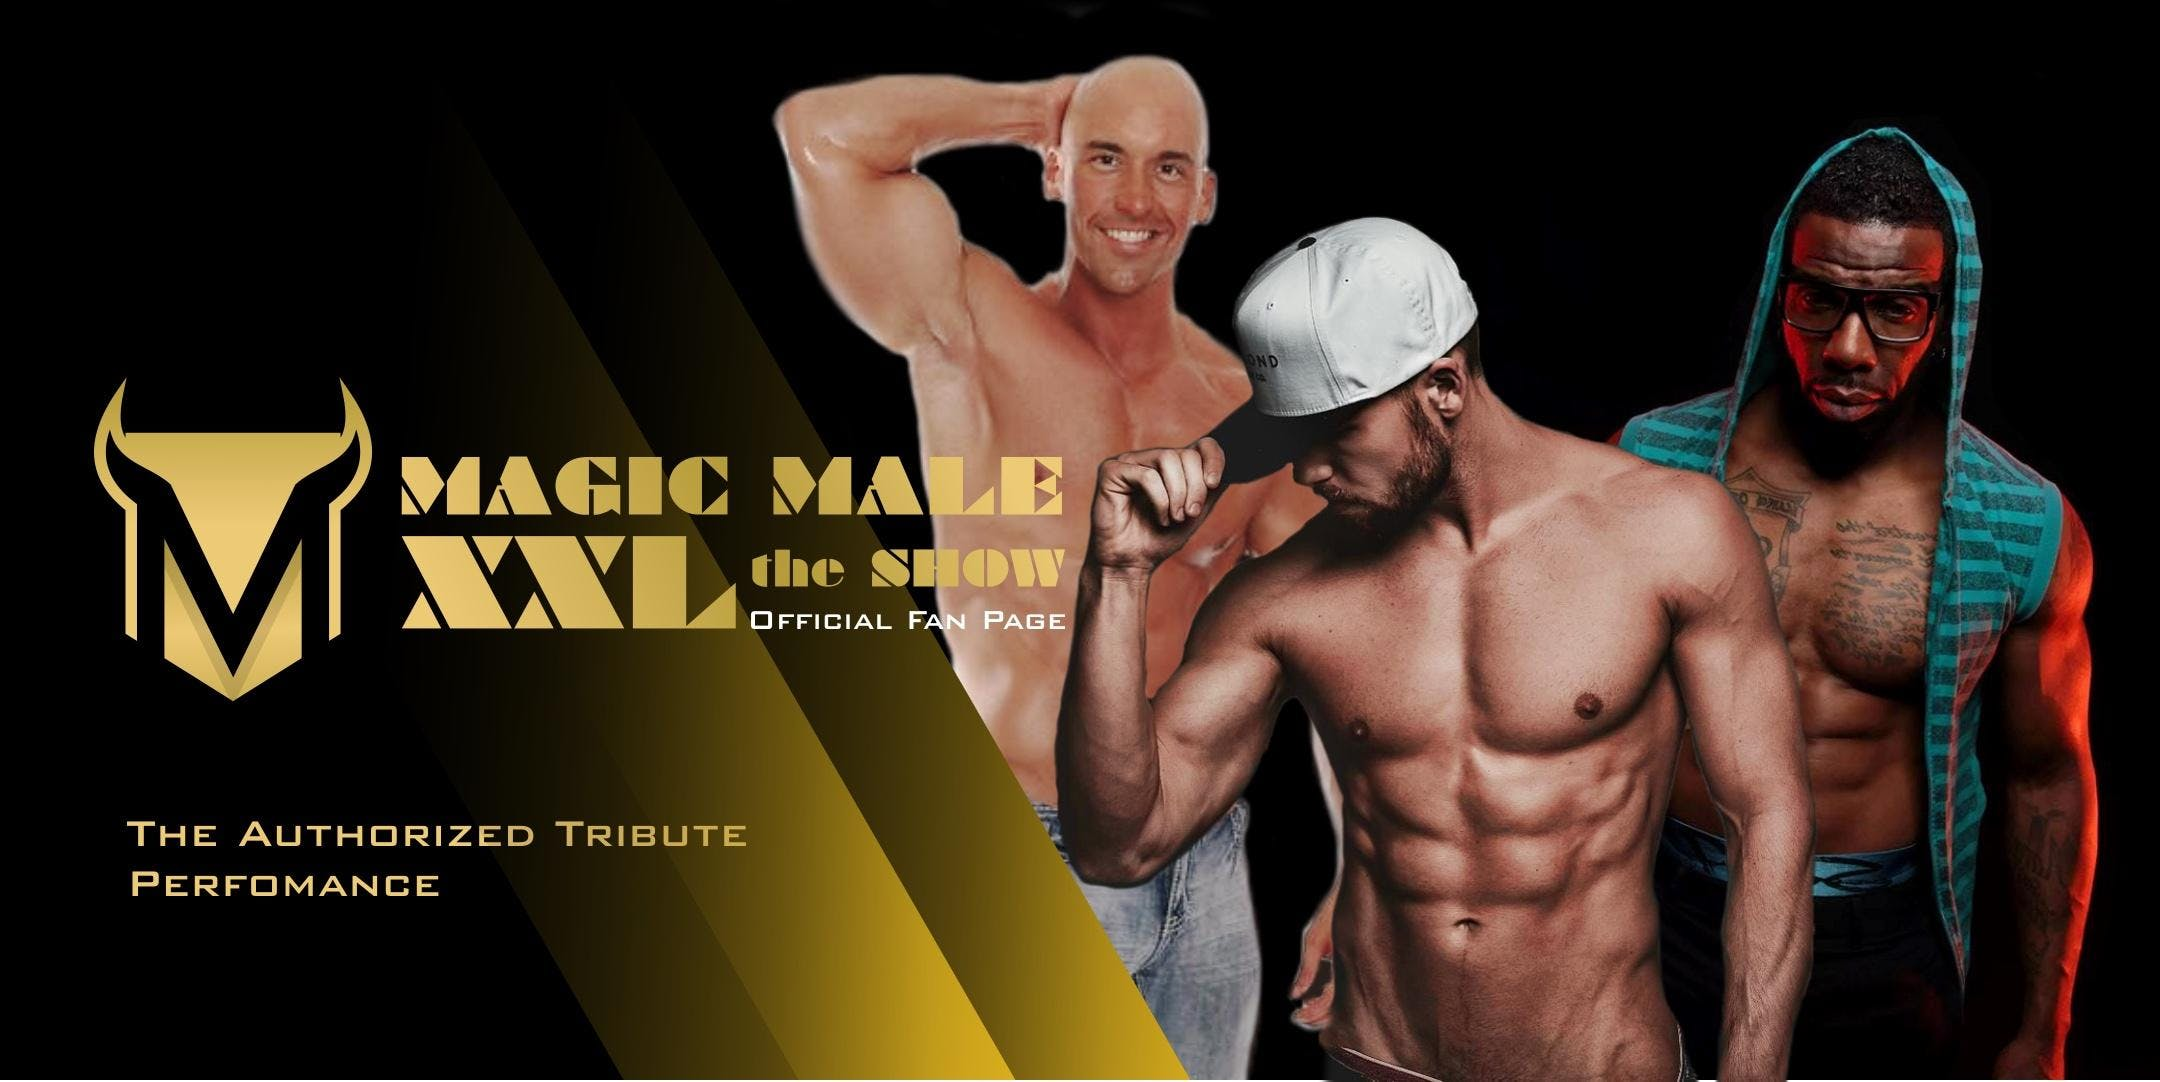 MAGIC MALE XXL the SHOW